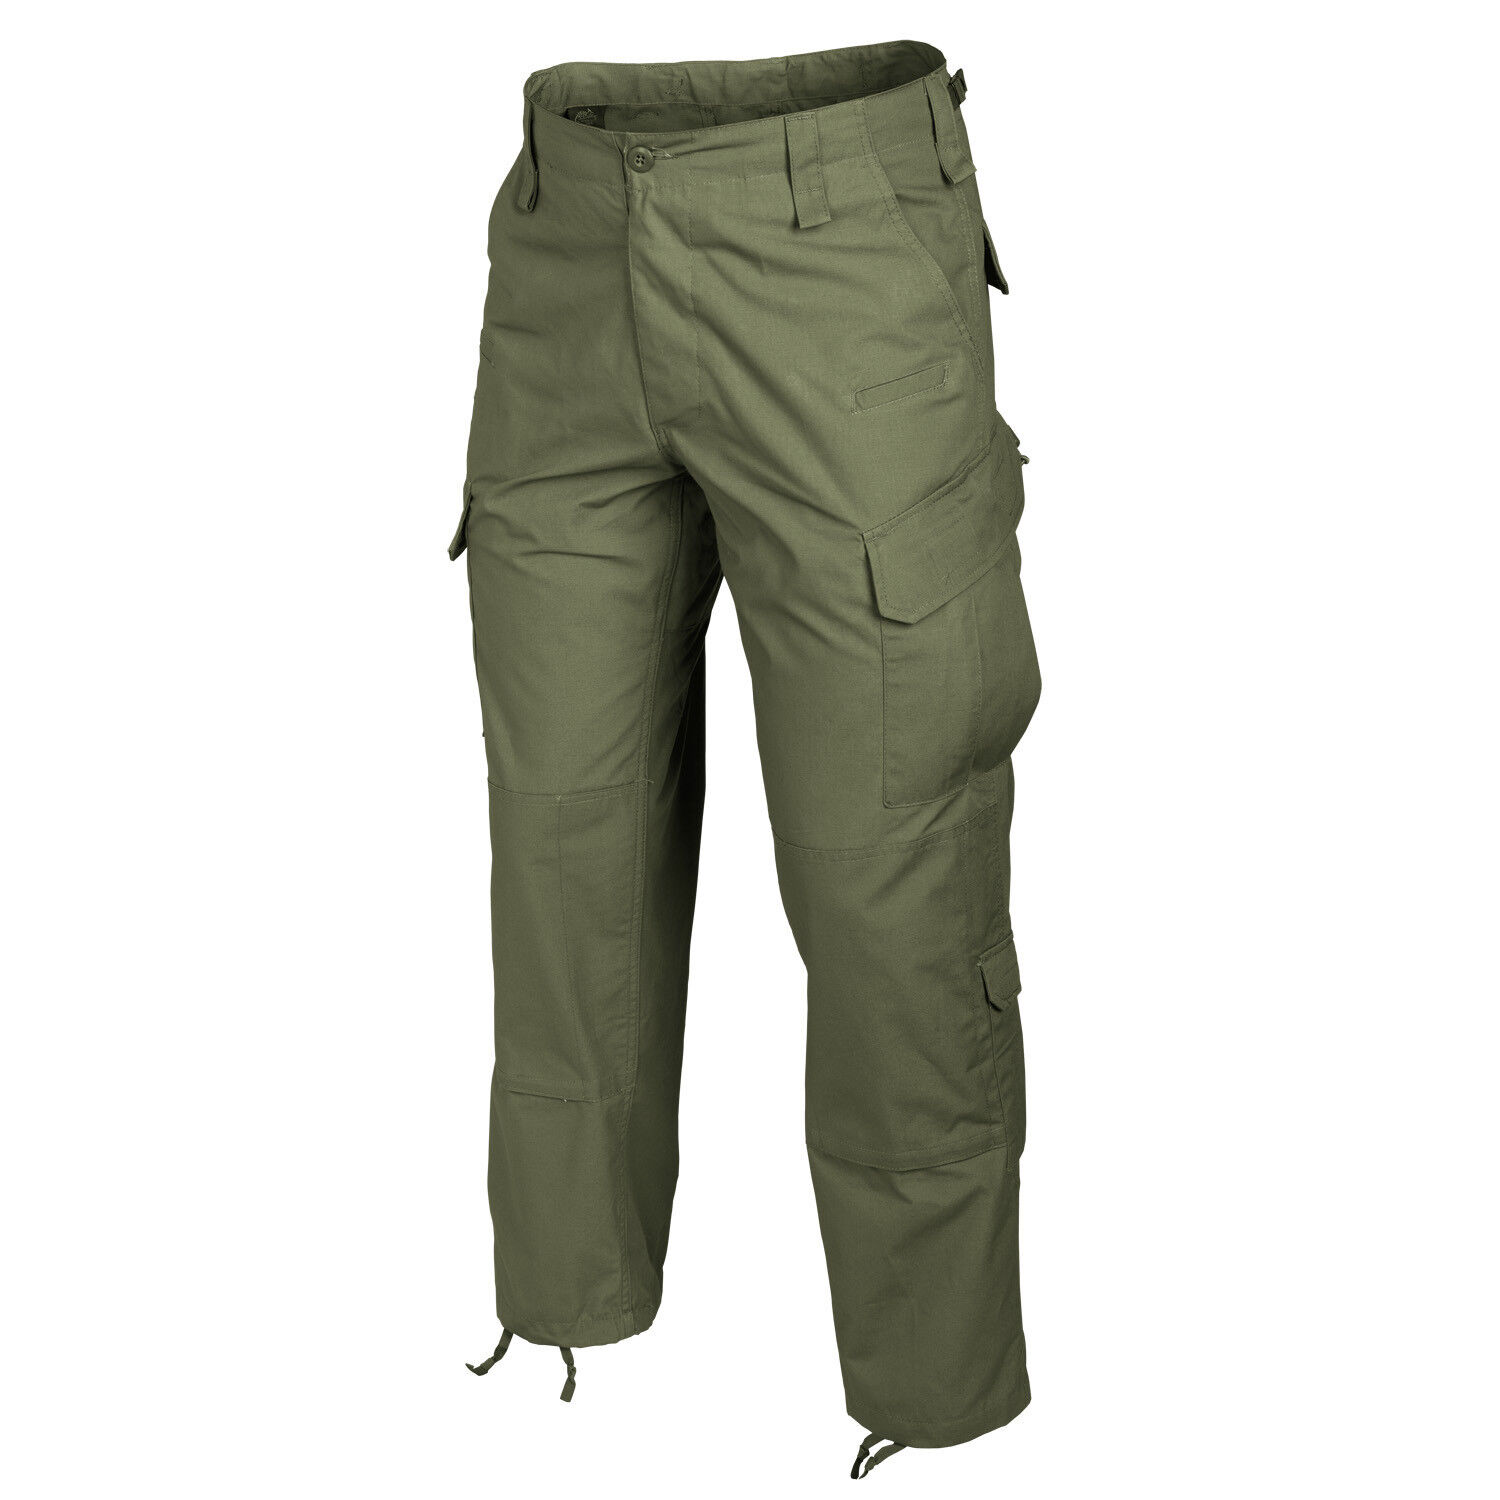 HELIKON TEX C P U Outdoor Freizeit pants trousers Hose Oliv XXLR XXLarge Regular  | Moderne Technologie